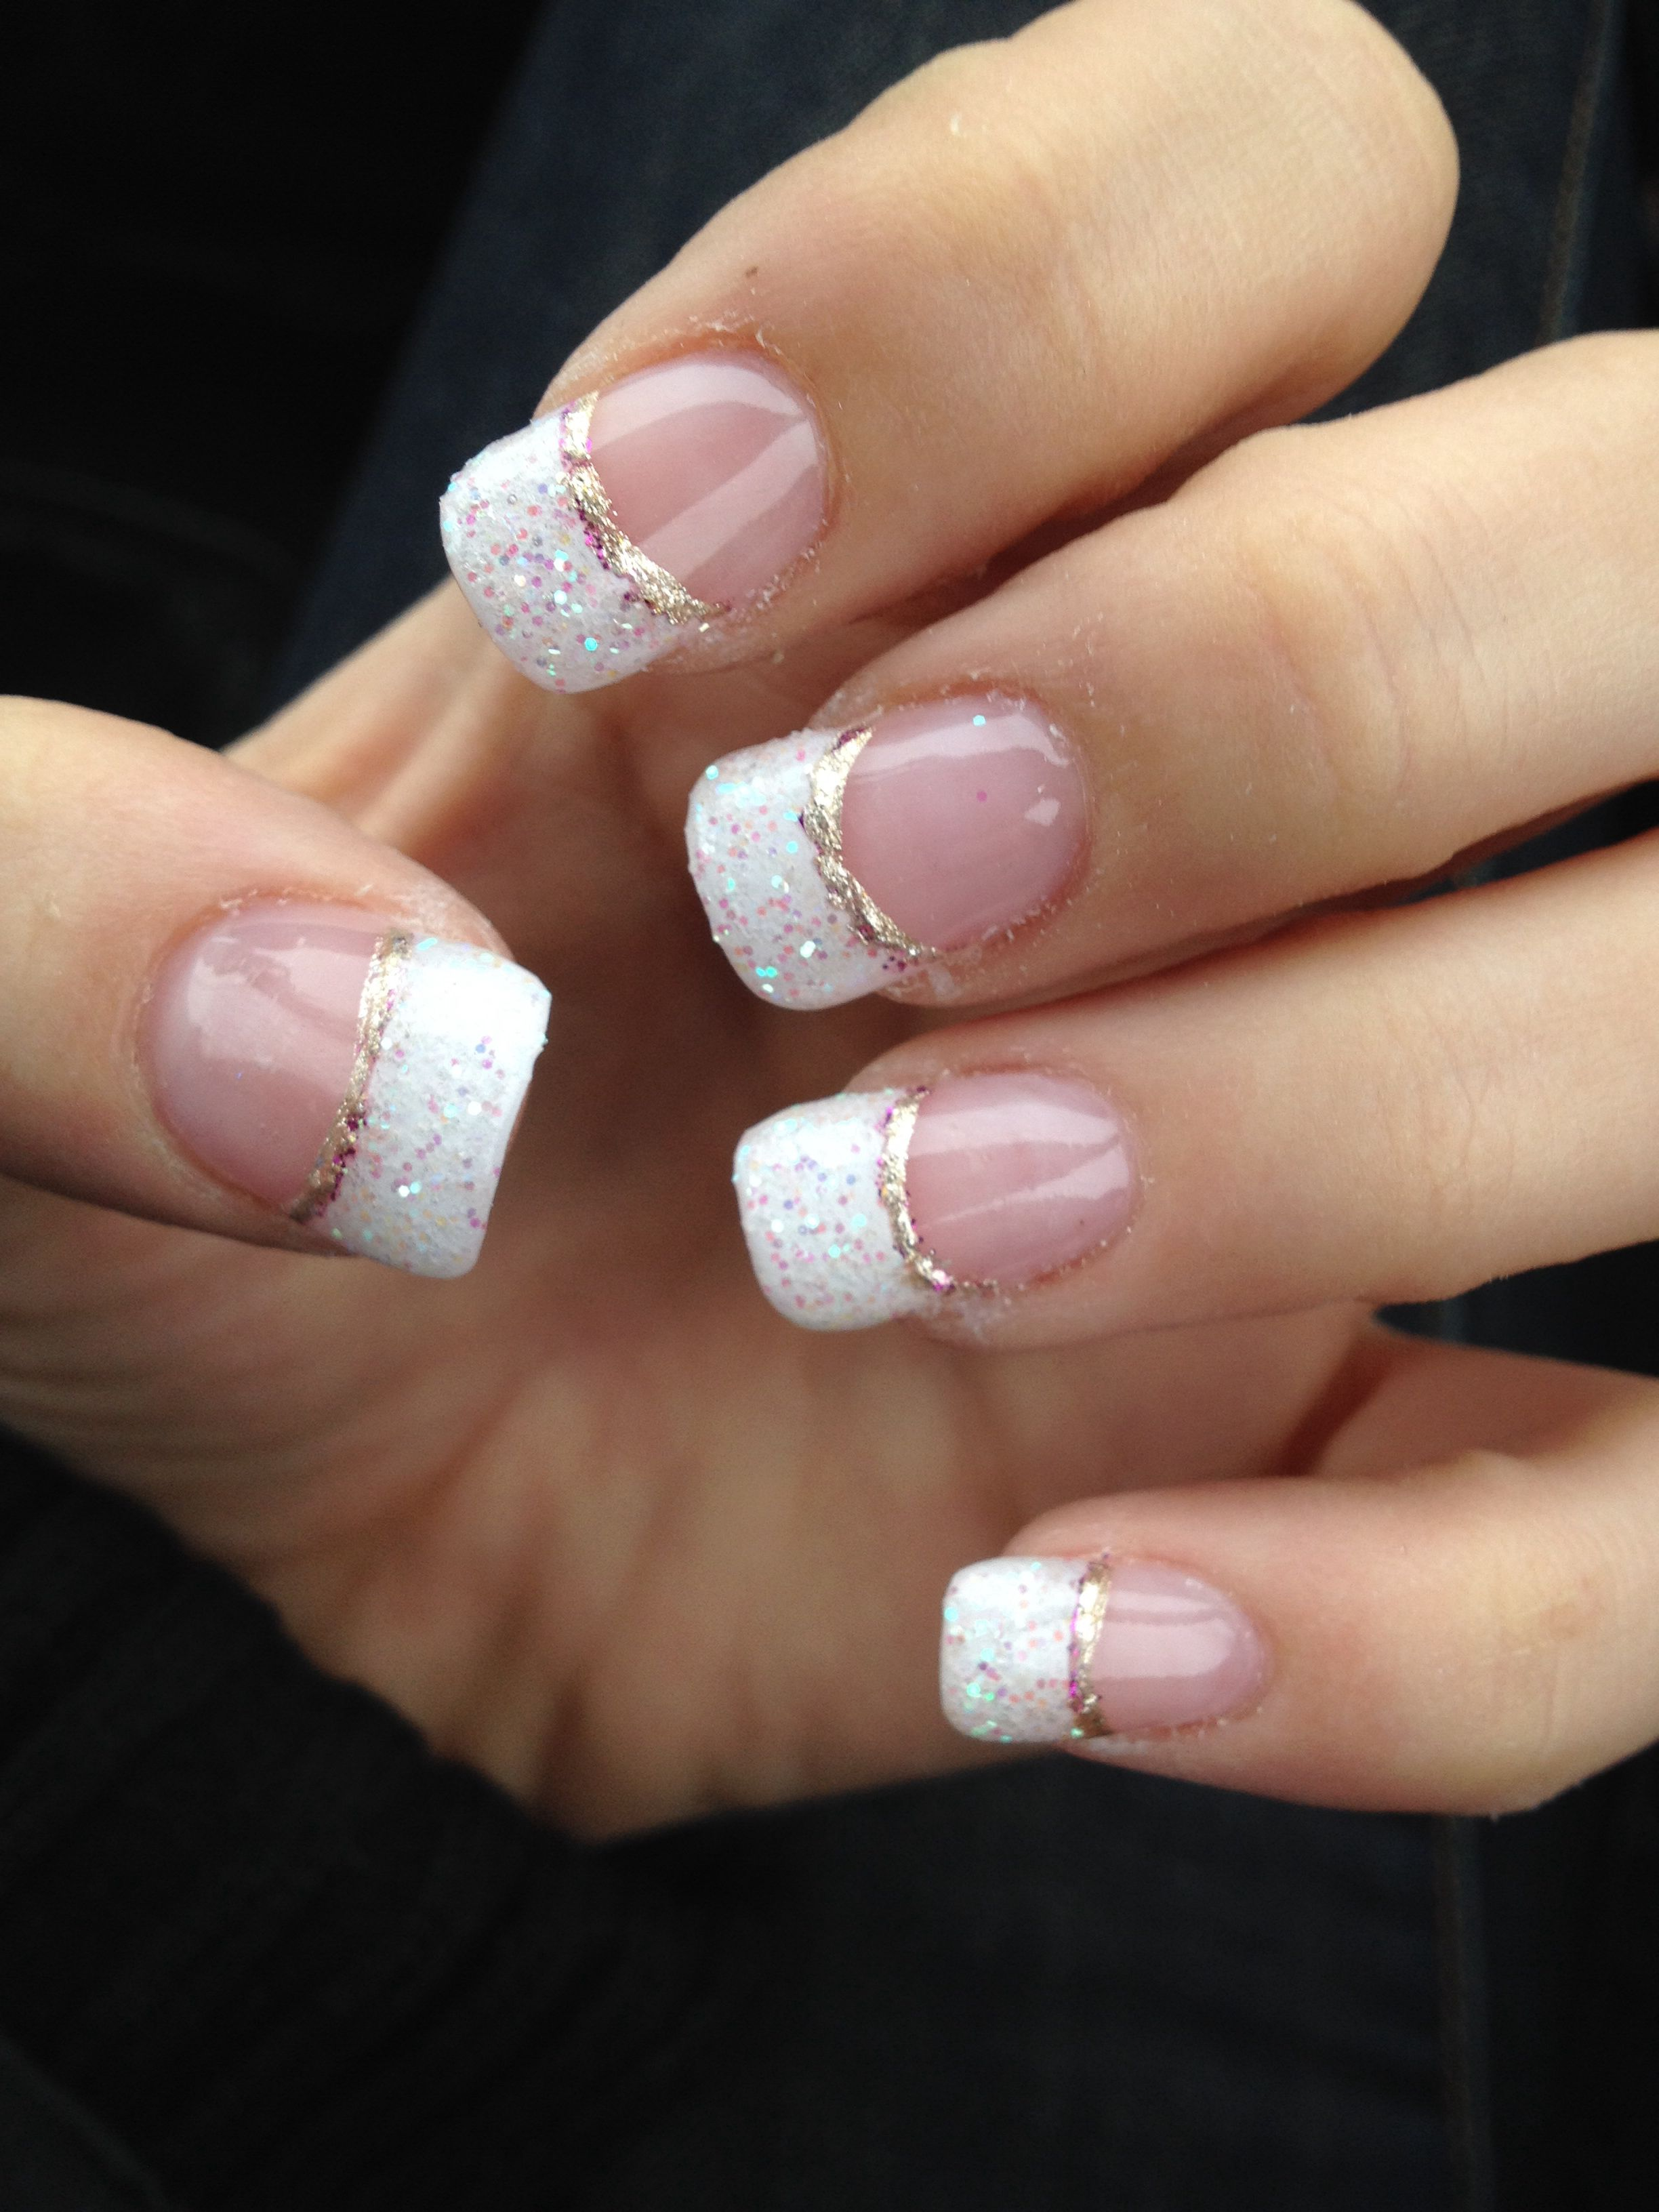 Newest gel nails! White glitter French manicure with champagne line ...